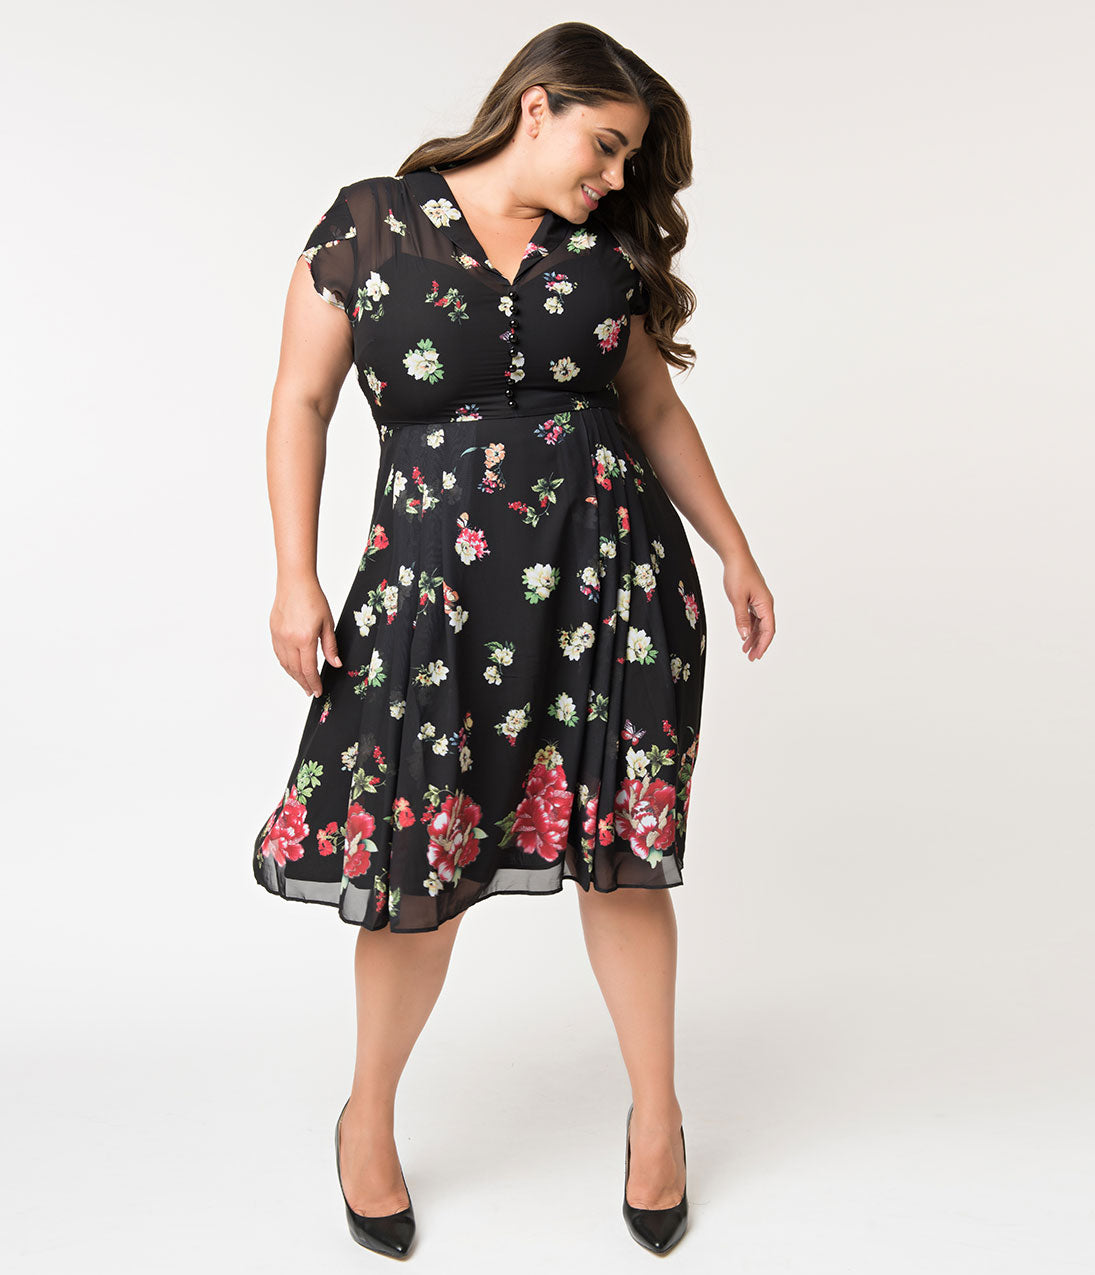 1940s Plus Size Fashion: Style Advice from 1940s to Today Hell Bunny Plus Size Black Floral Jolie Papillon Chiffon Swing Dress $50.00 AT vintagedancer.com